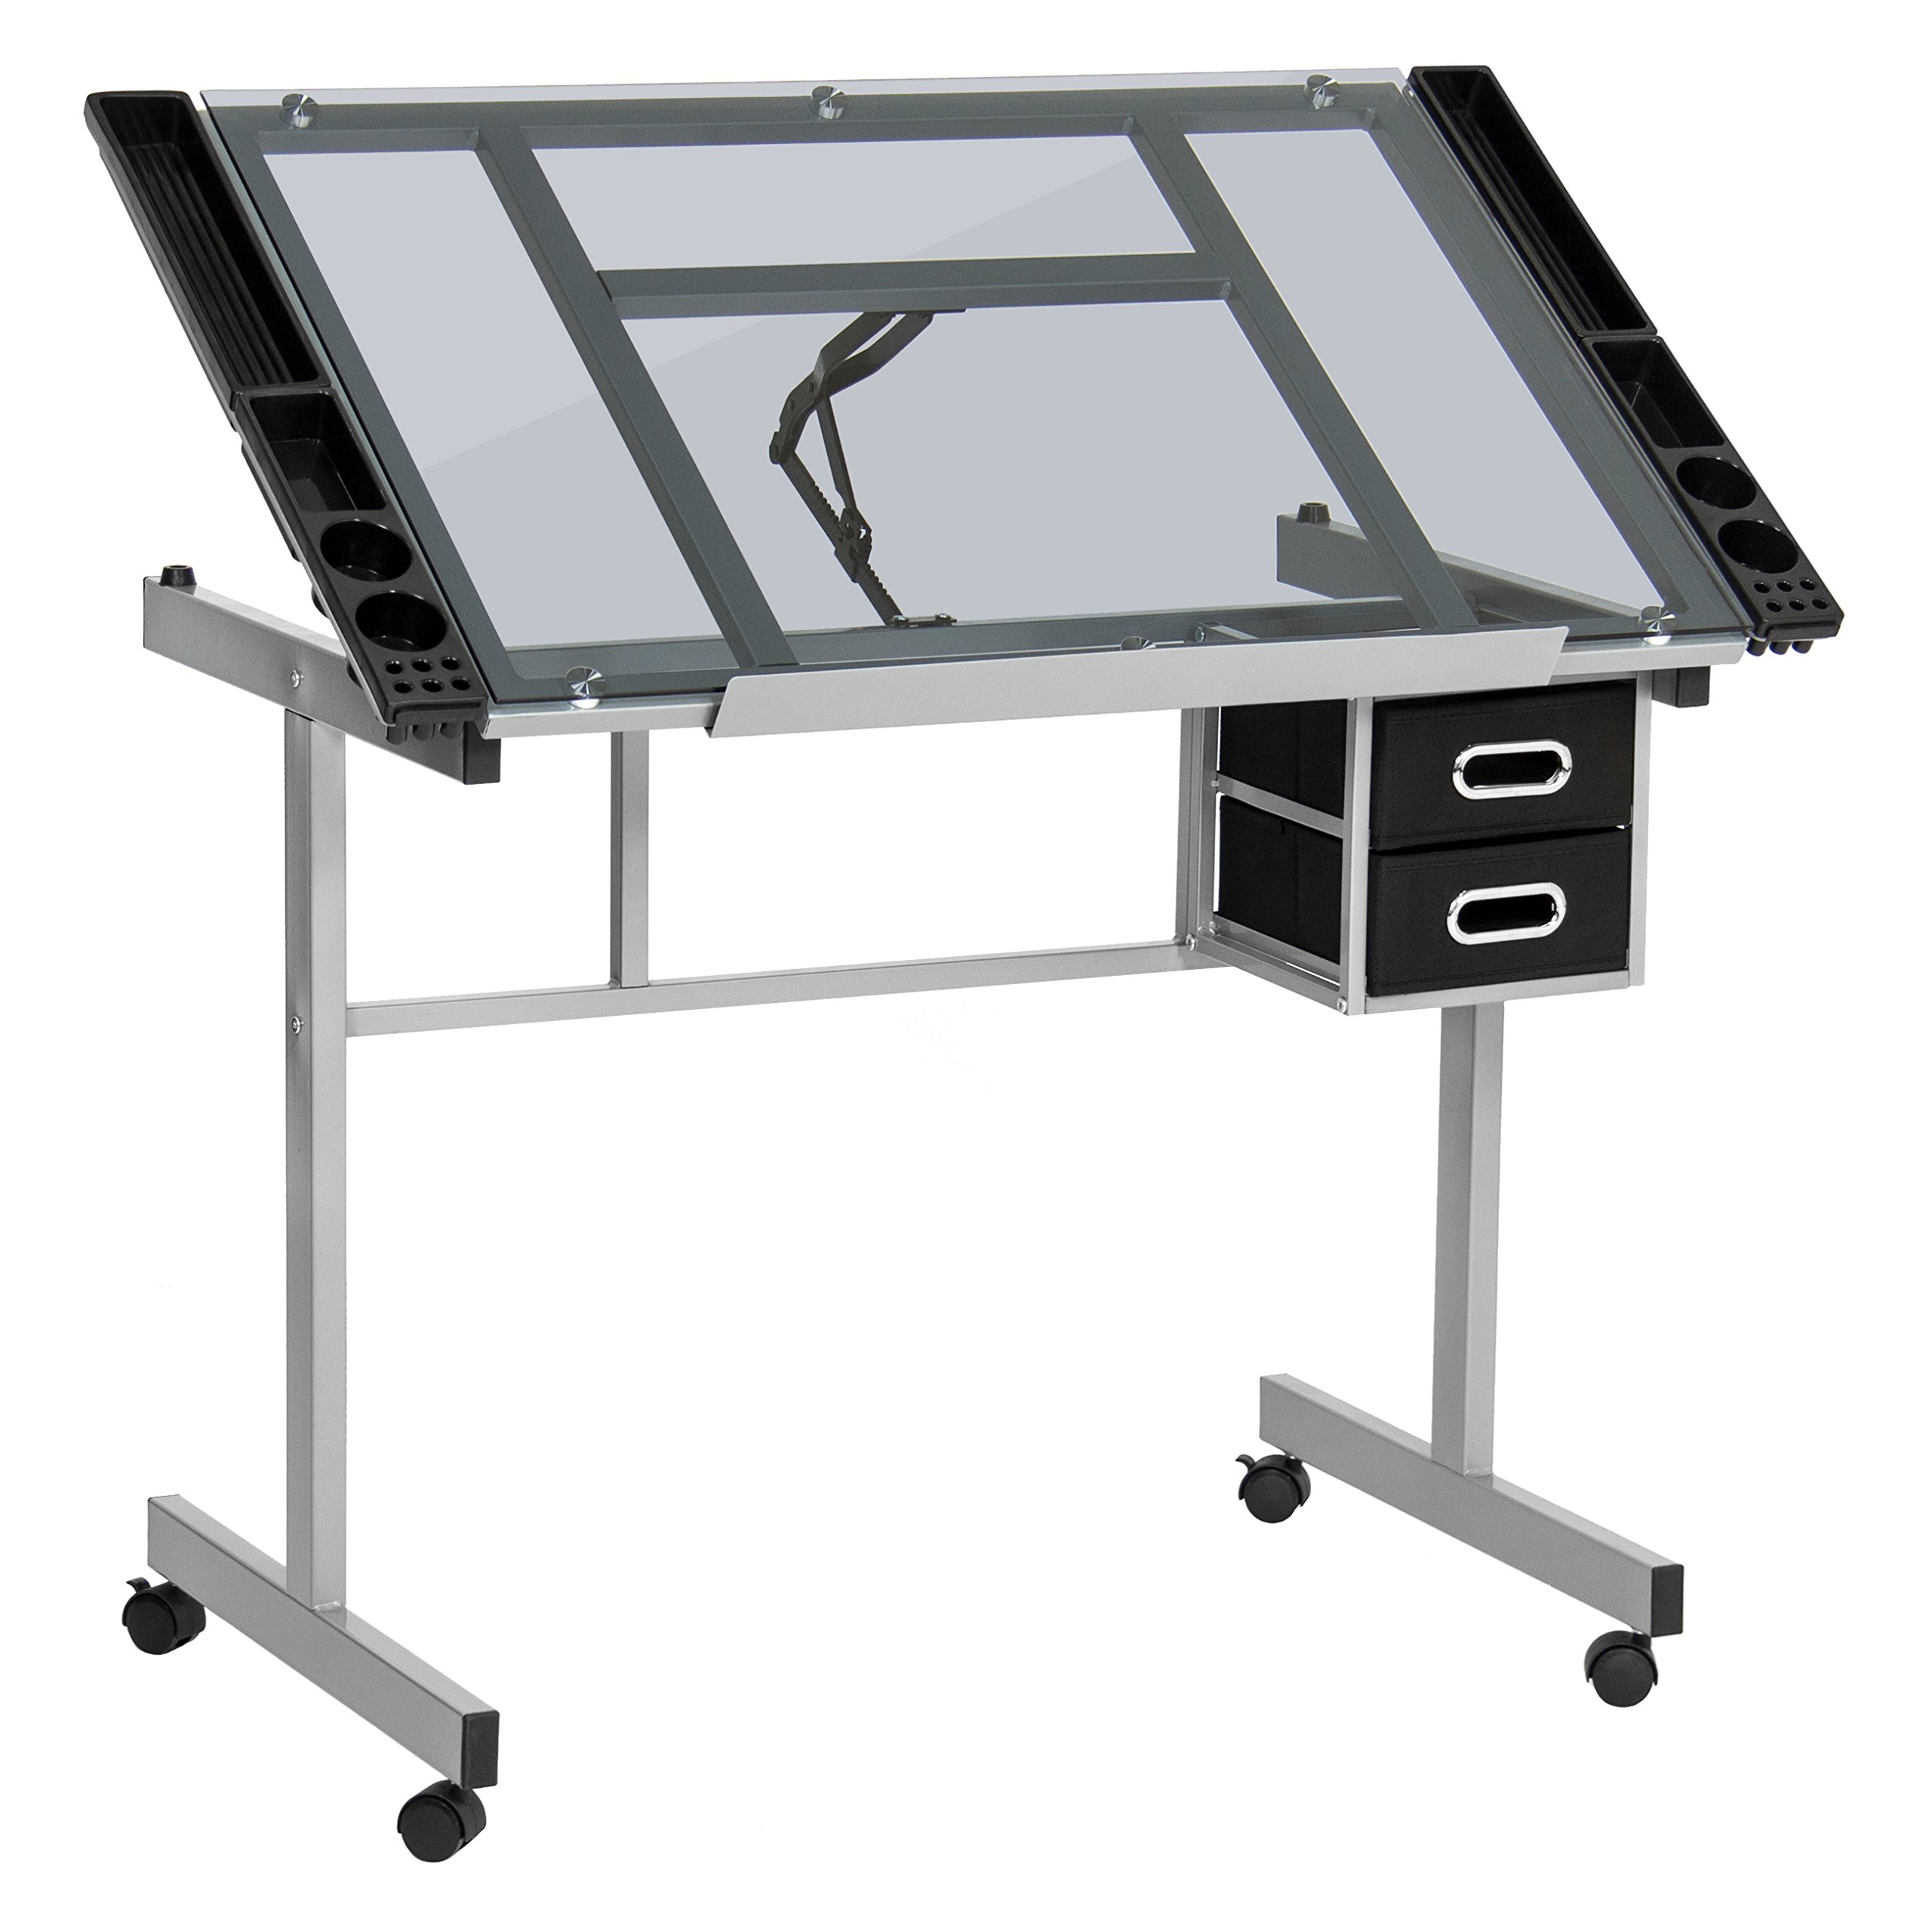 Best Choice Products Office Drawing Desk Station Tempered Glass Adjustable Drafting Table W/wheels